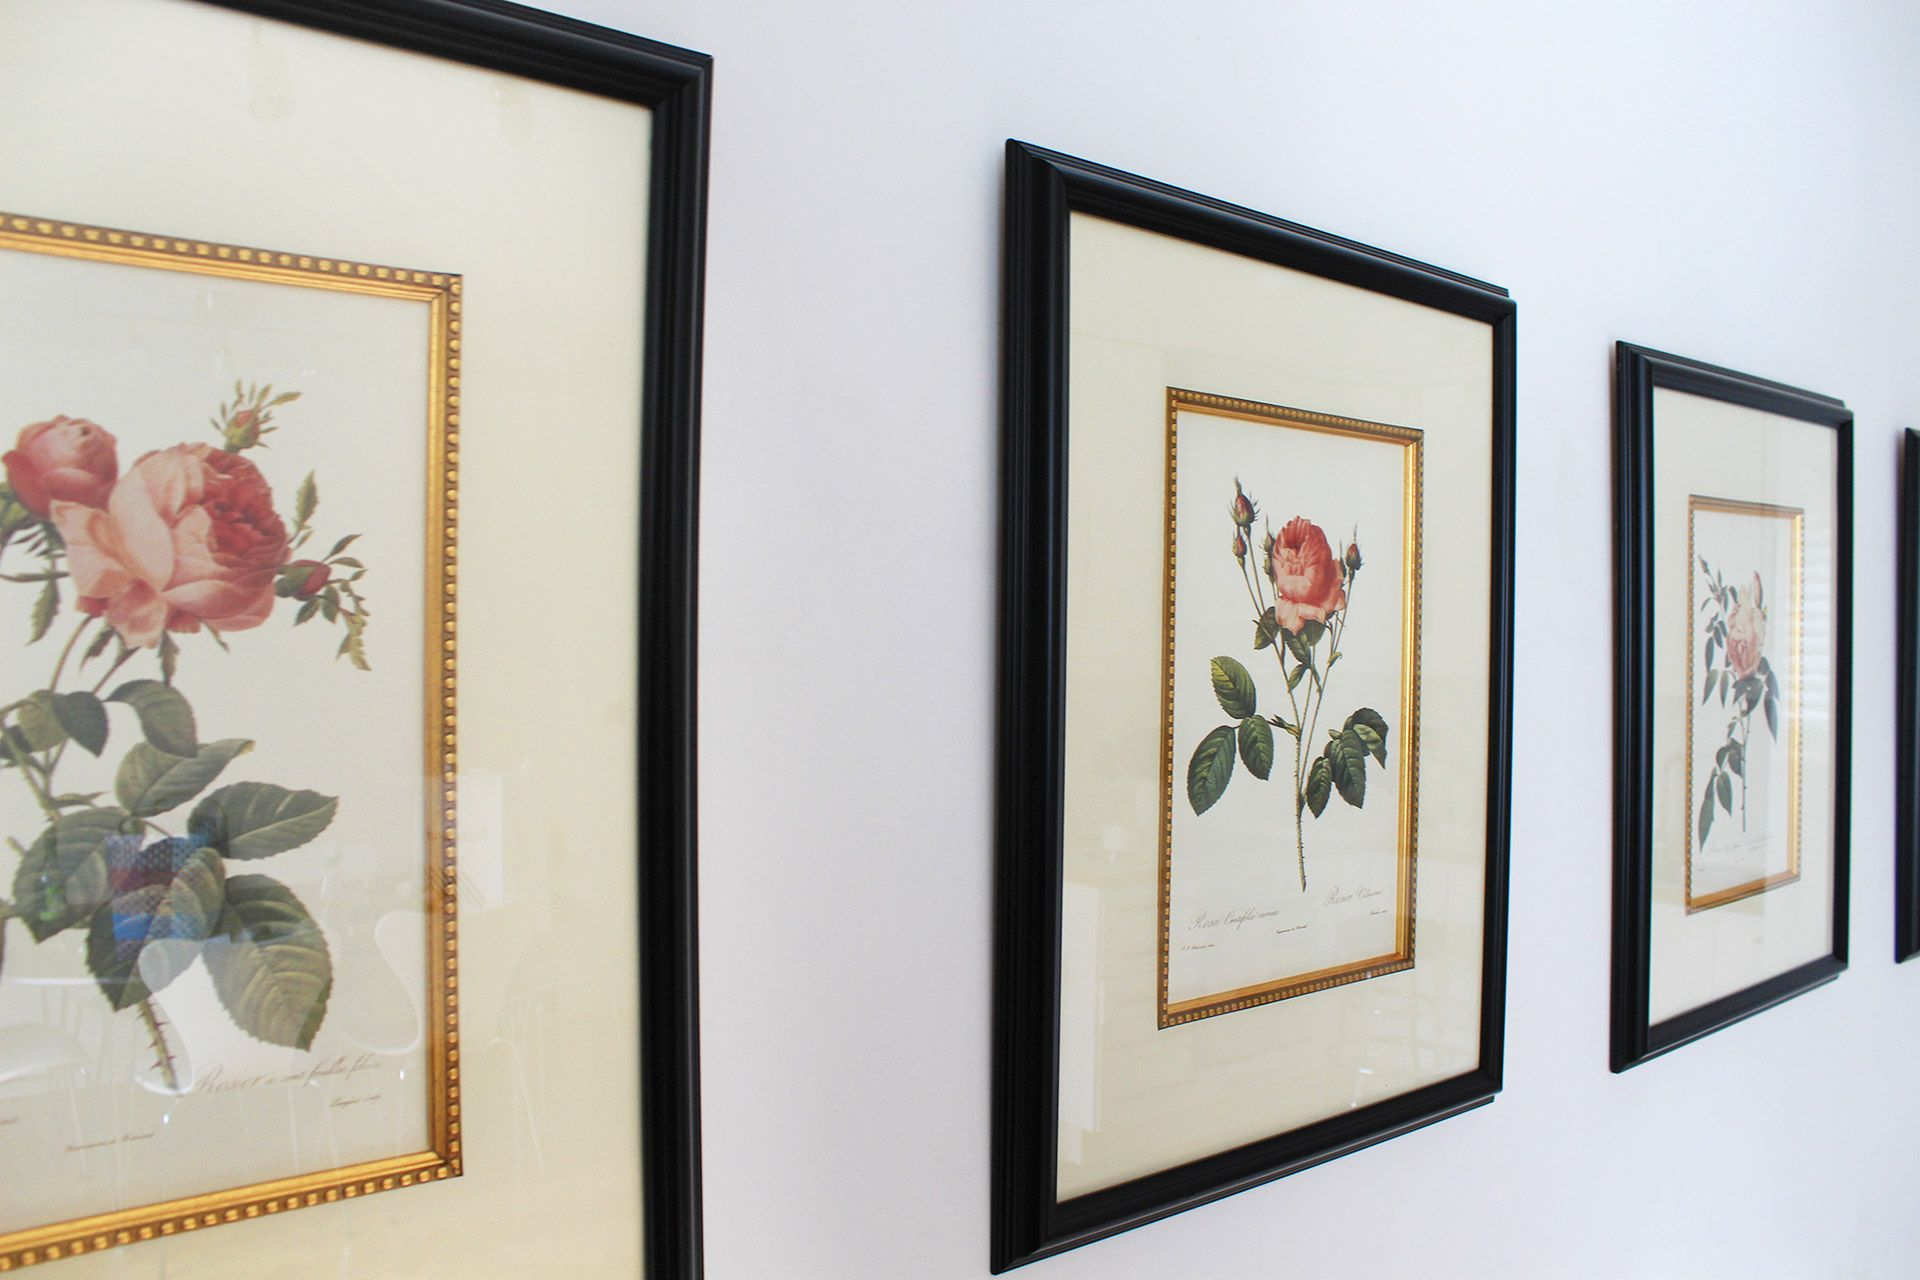 Charming floral prints in the Russell vacation rental offered by London Perfect